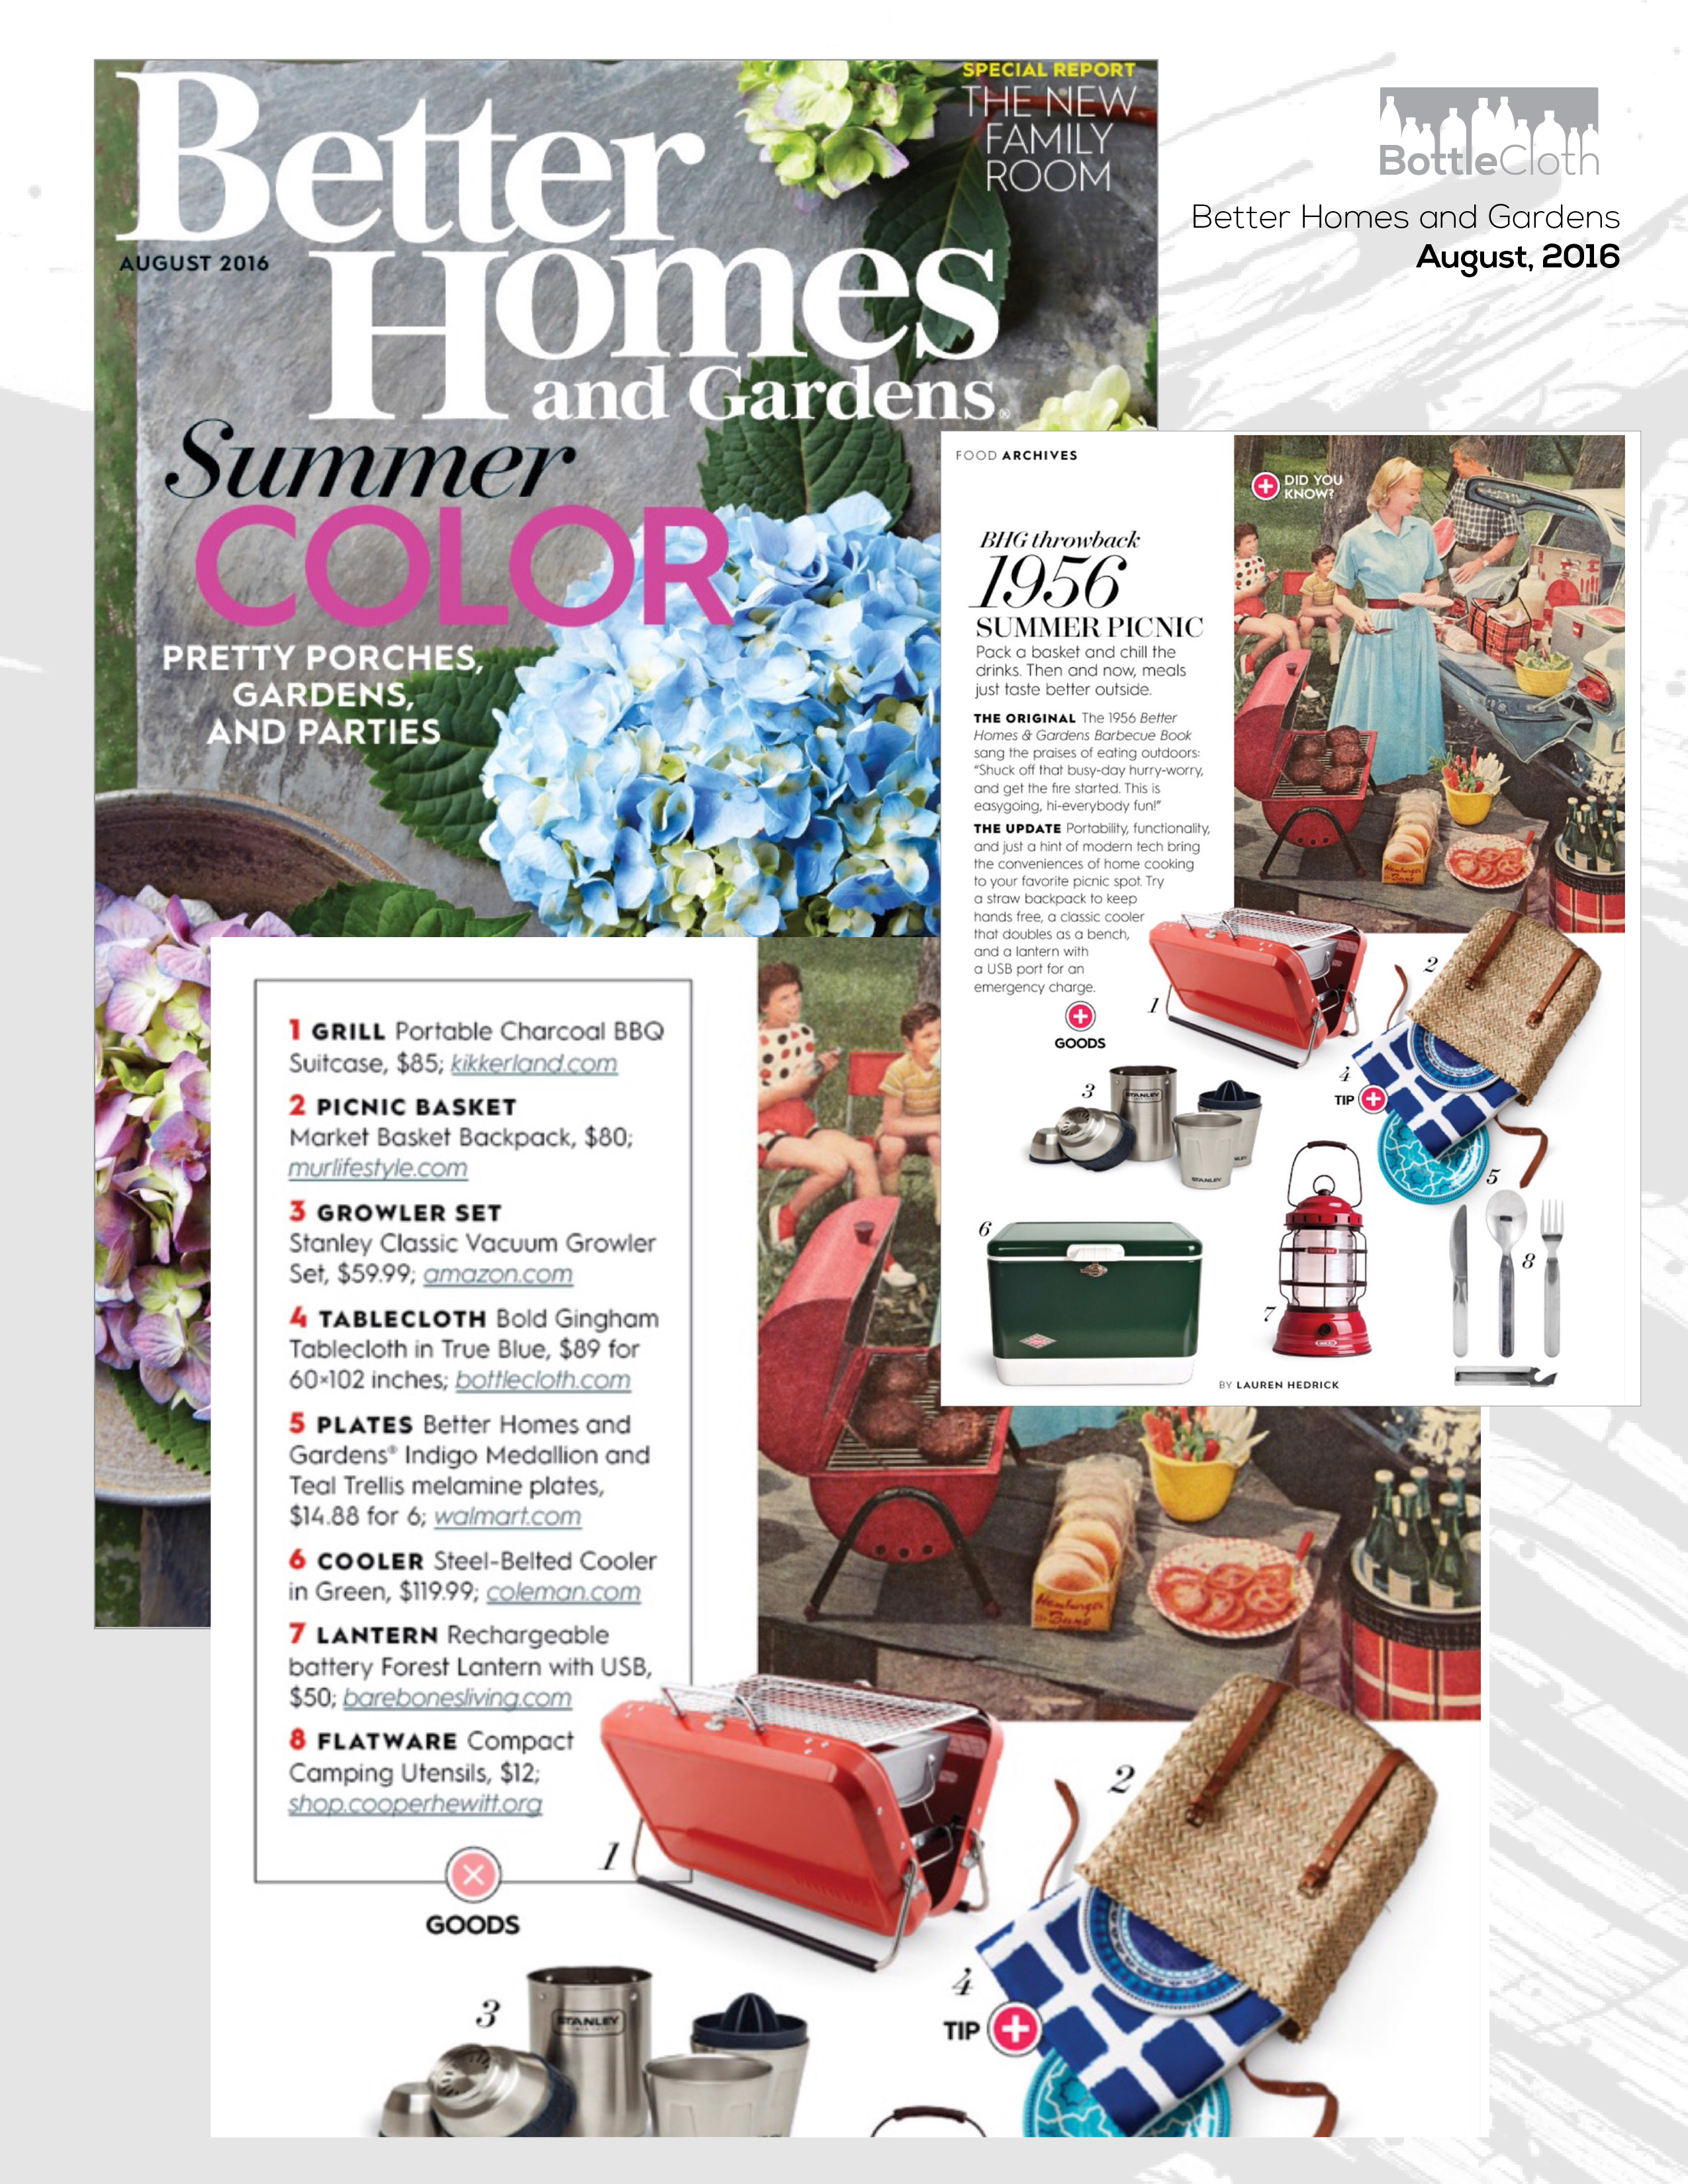 BottleCloth Press - Better Homes & Gardens